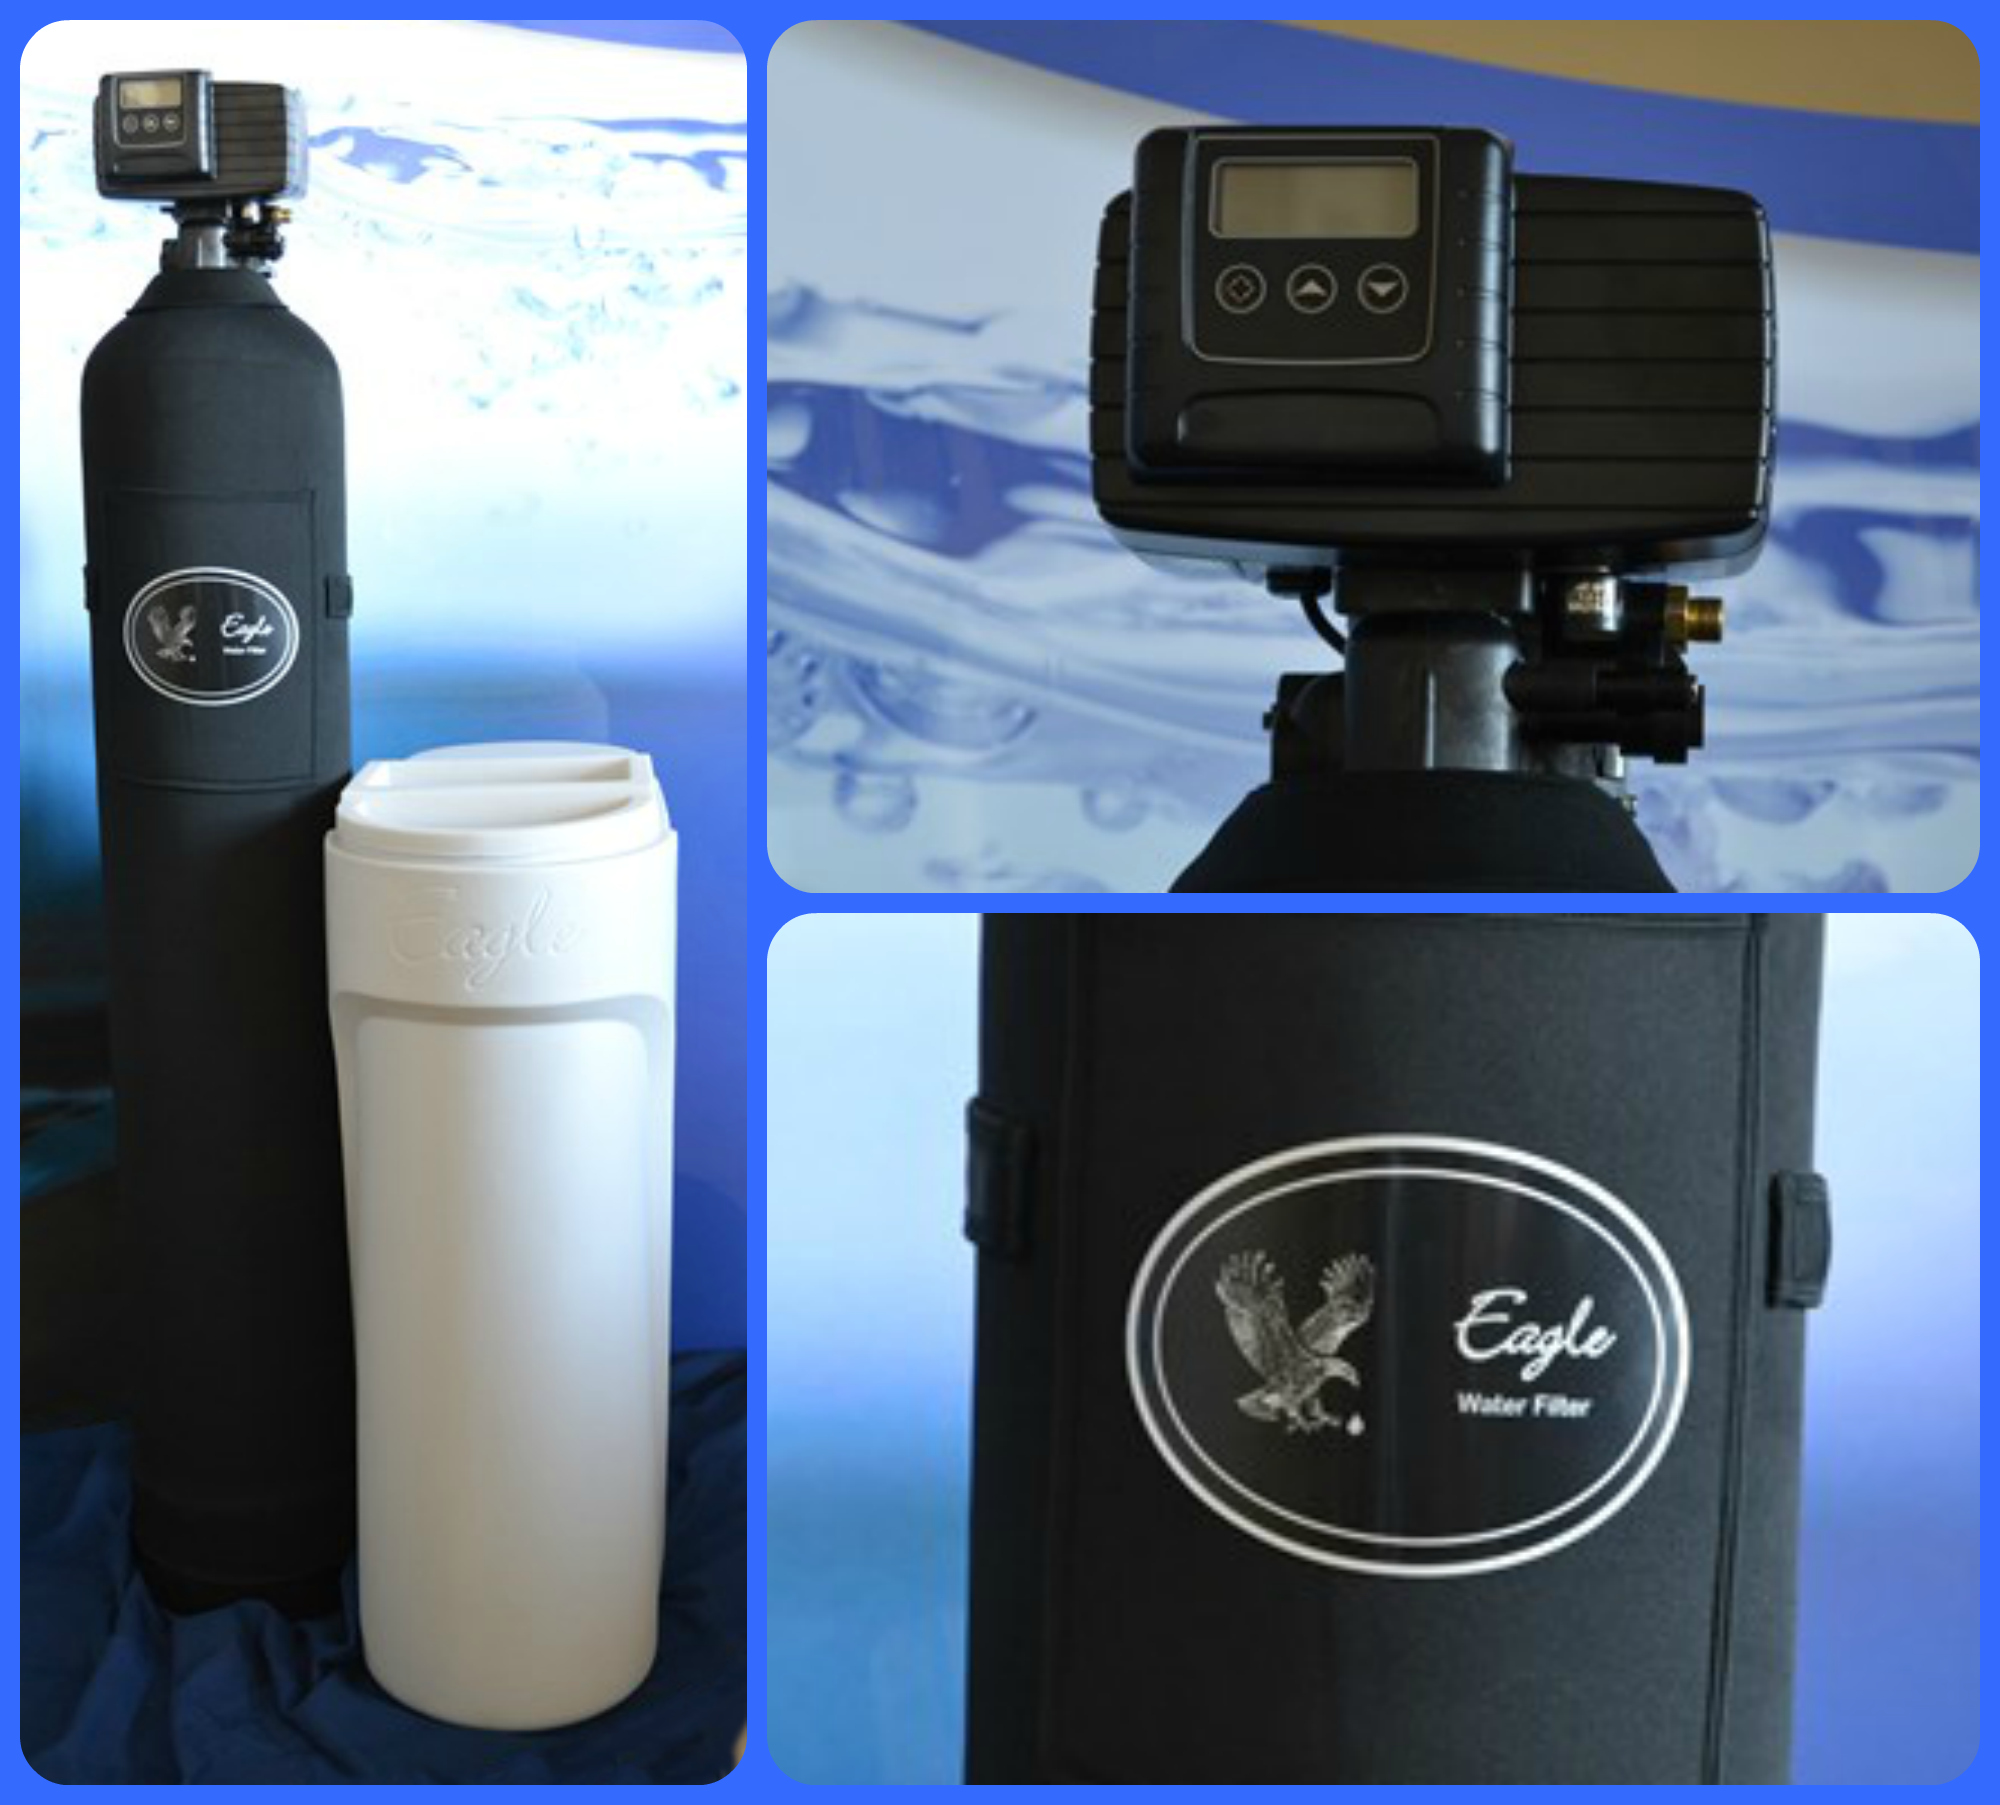 Home Water Treatment Systems Cost Products Eagle Water Treatment Systems